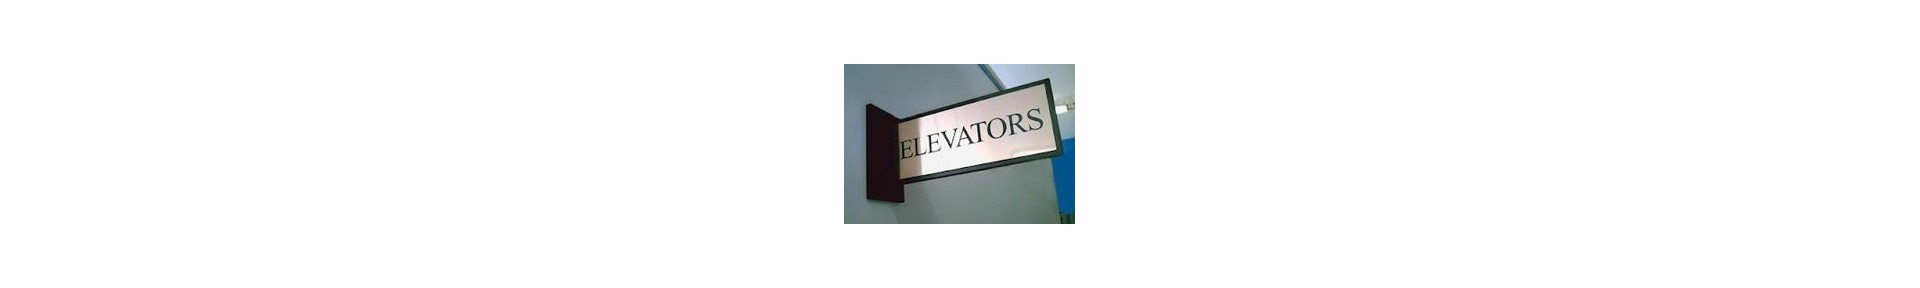 durable business signage that is directional and brand reinforcing